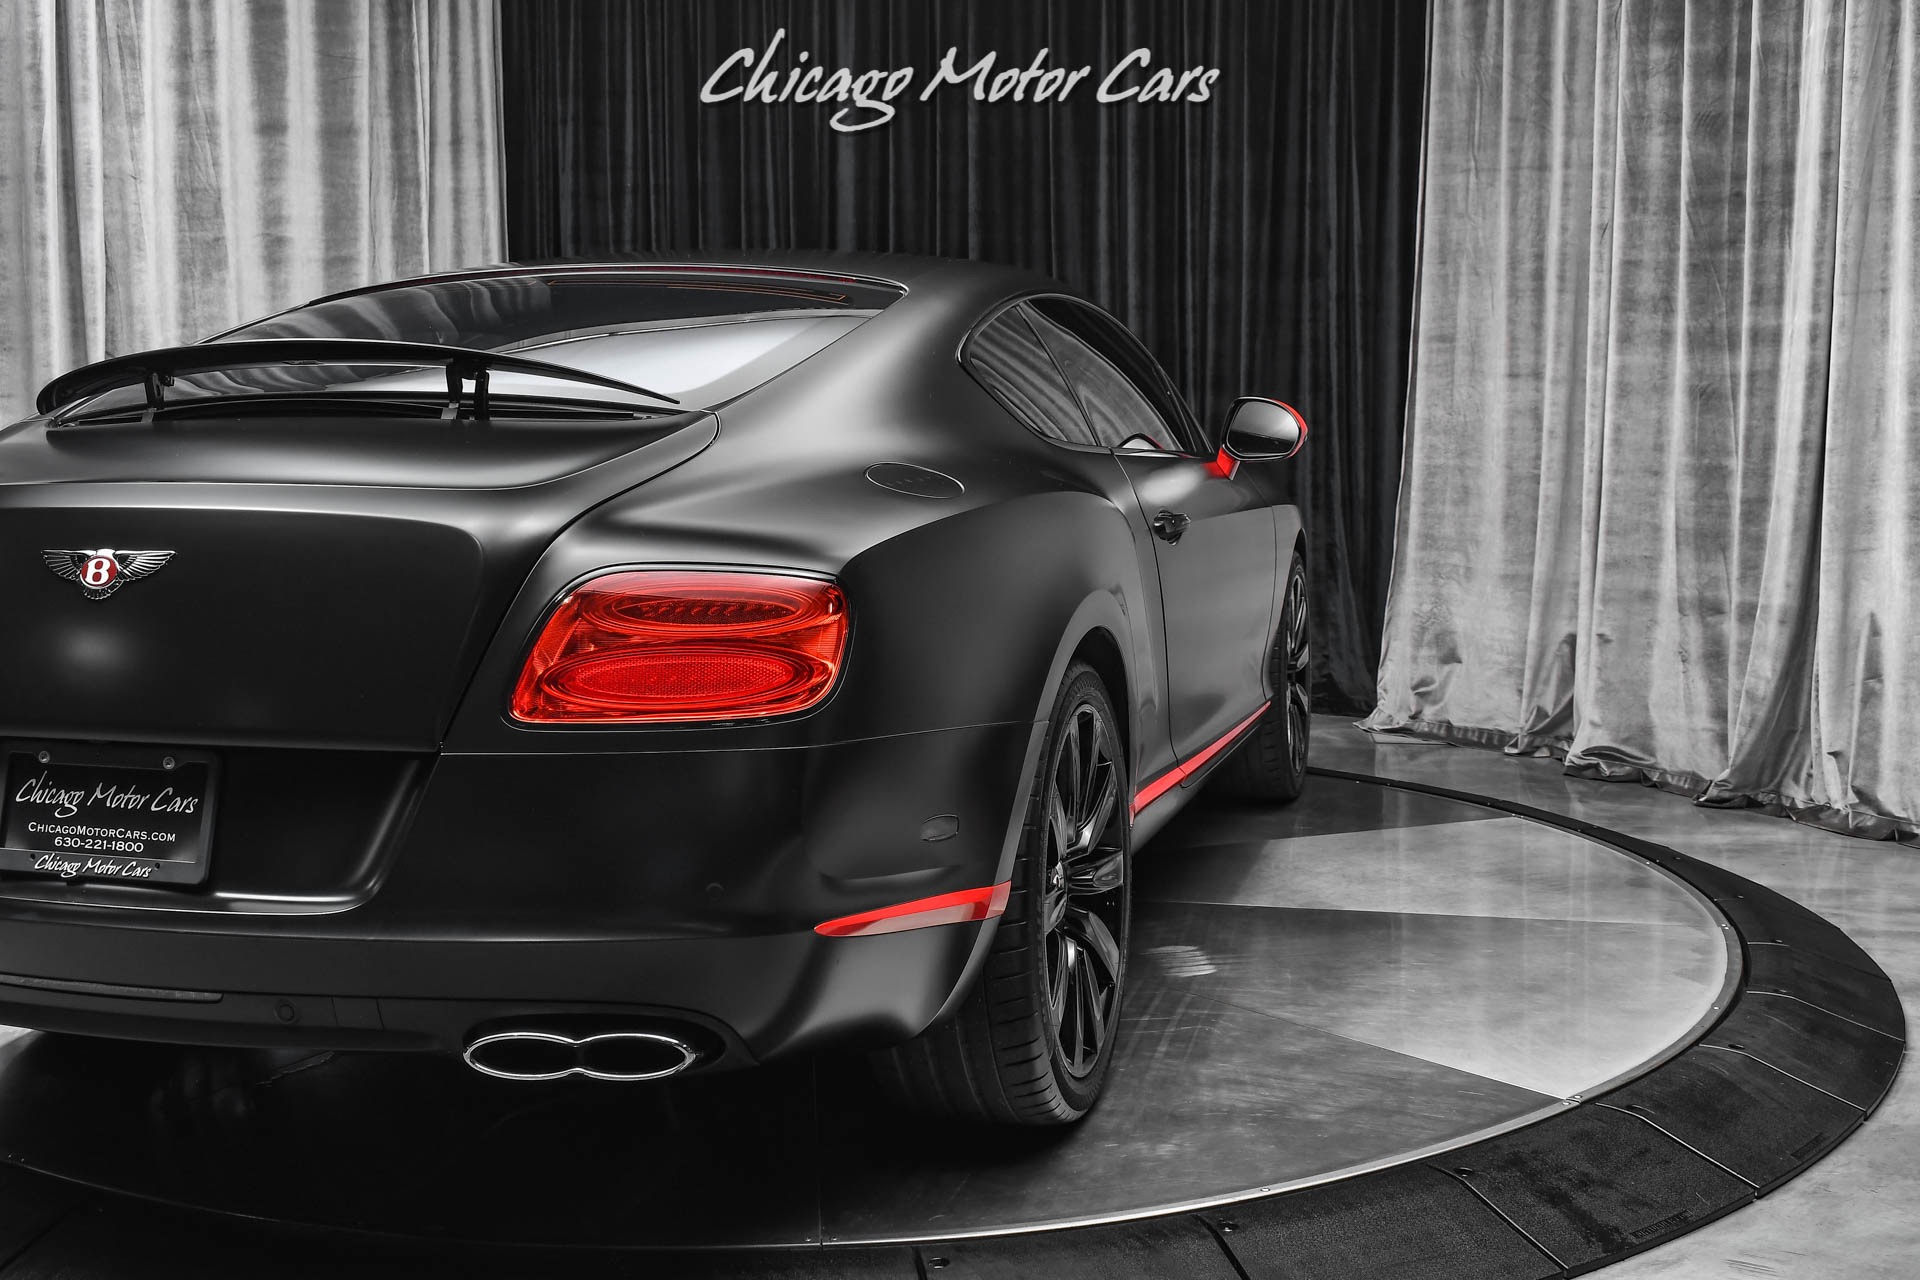 Used-2014-Bentley-Continental-GT-V8-Coupe-Capristo-Valve-Control-Exhaust-Touring-Specification-Massaging